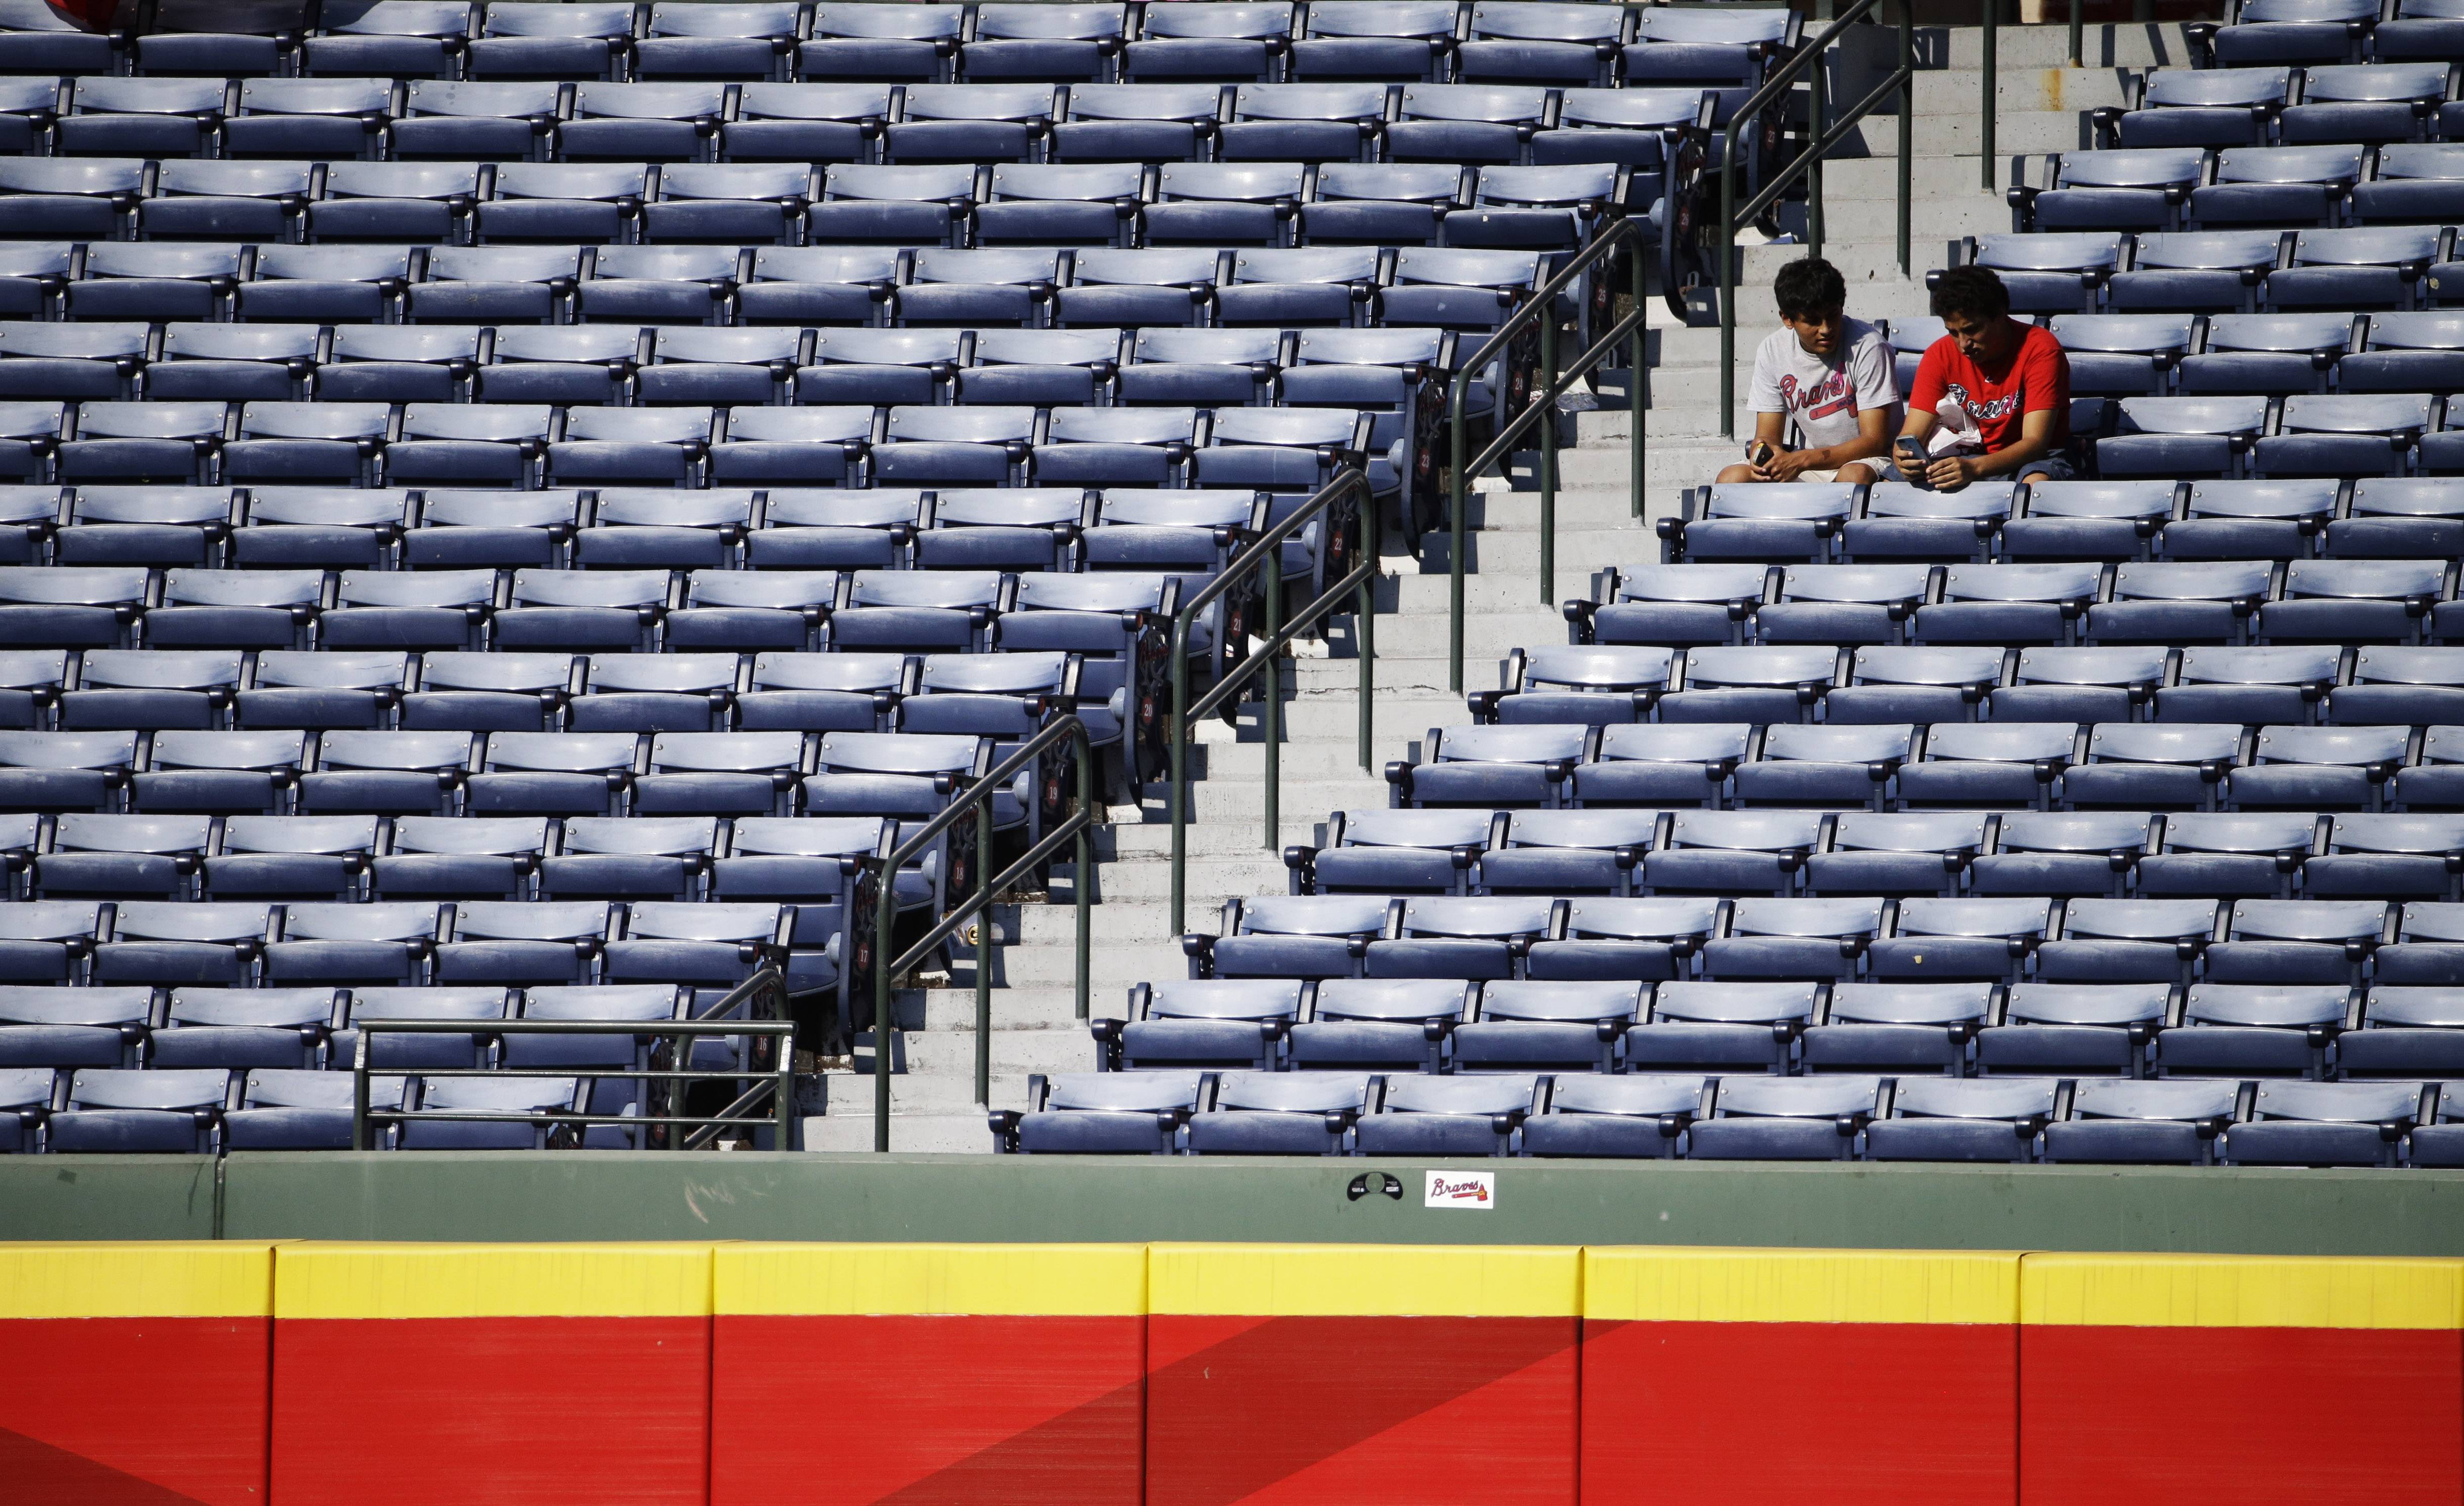 Much like these Atlanta Braves fans willing to stick by their team, Chris Rongey doesn't want to see the baseball season end.